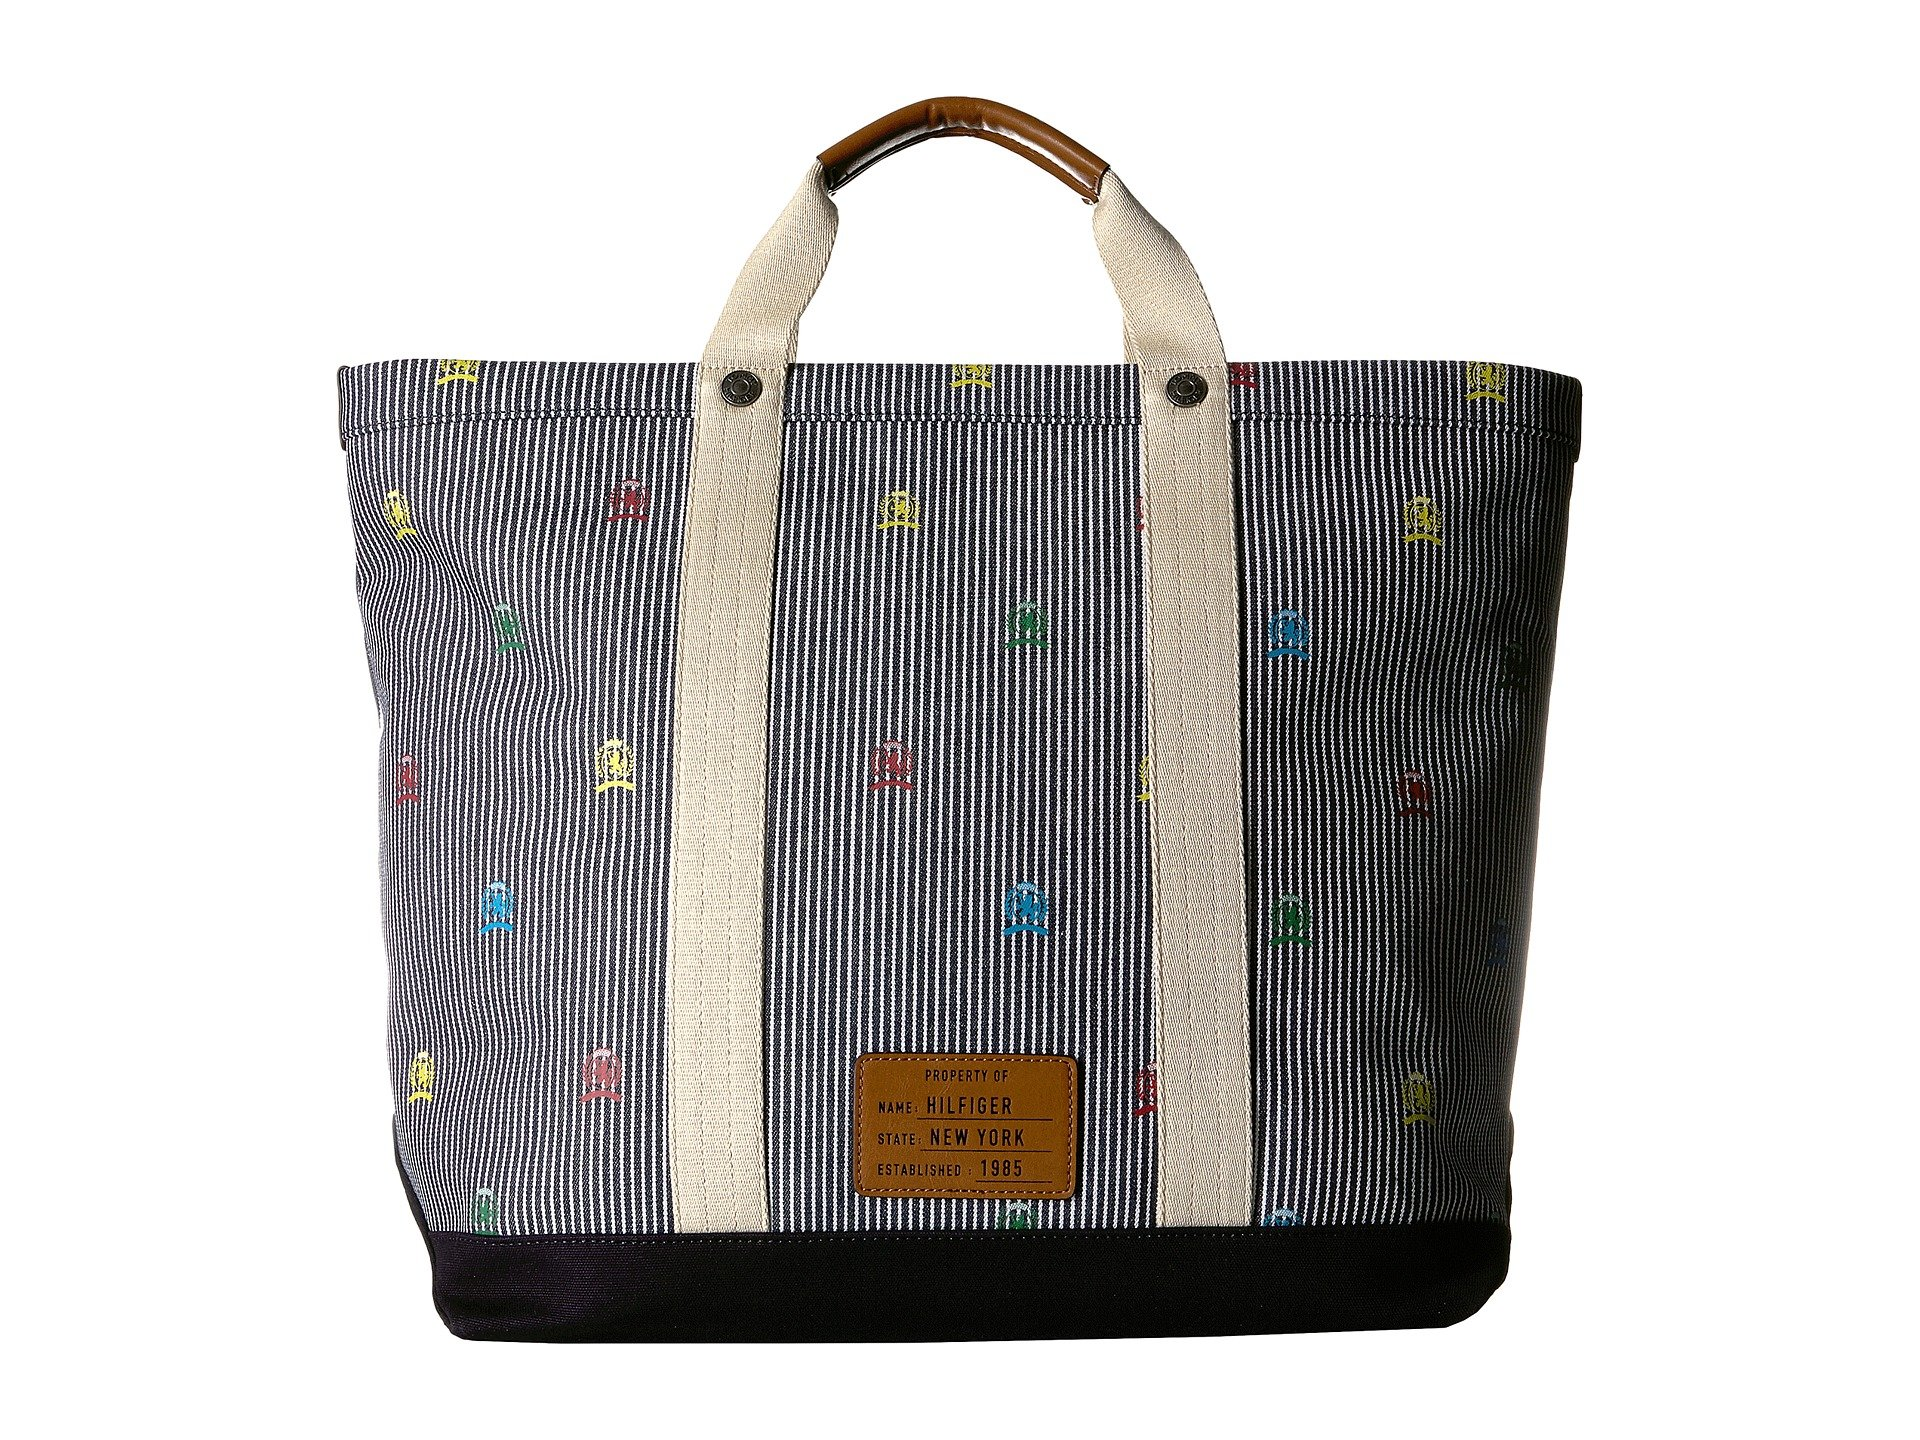 Bolso de Mano para Hombre Tommy Hilfiger Winners Circle Tote - Railroad Crest  + Tommy Hilfiger en VeoyCompro.net